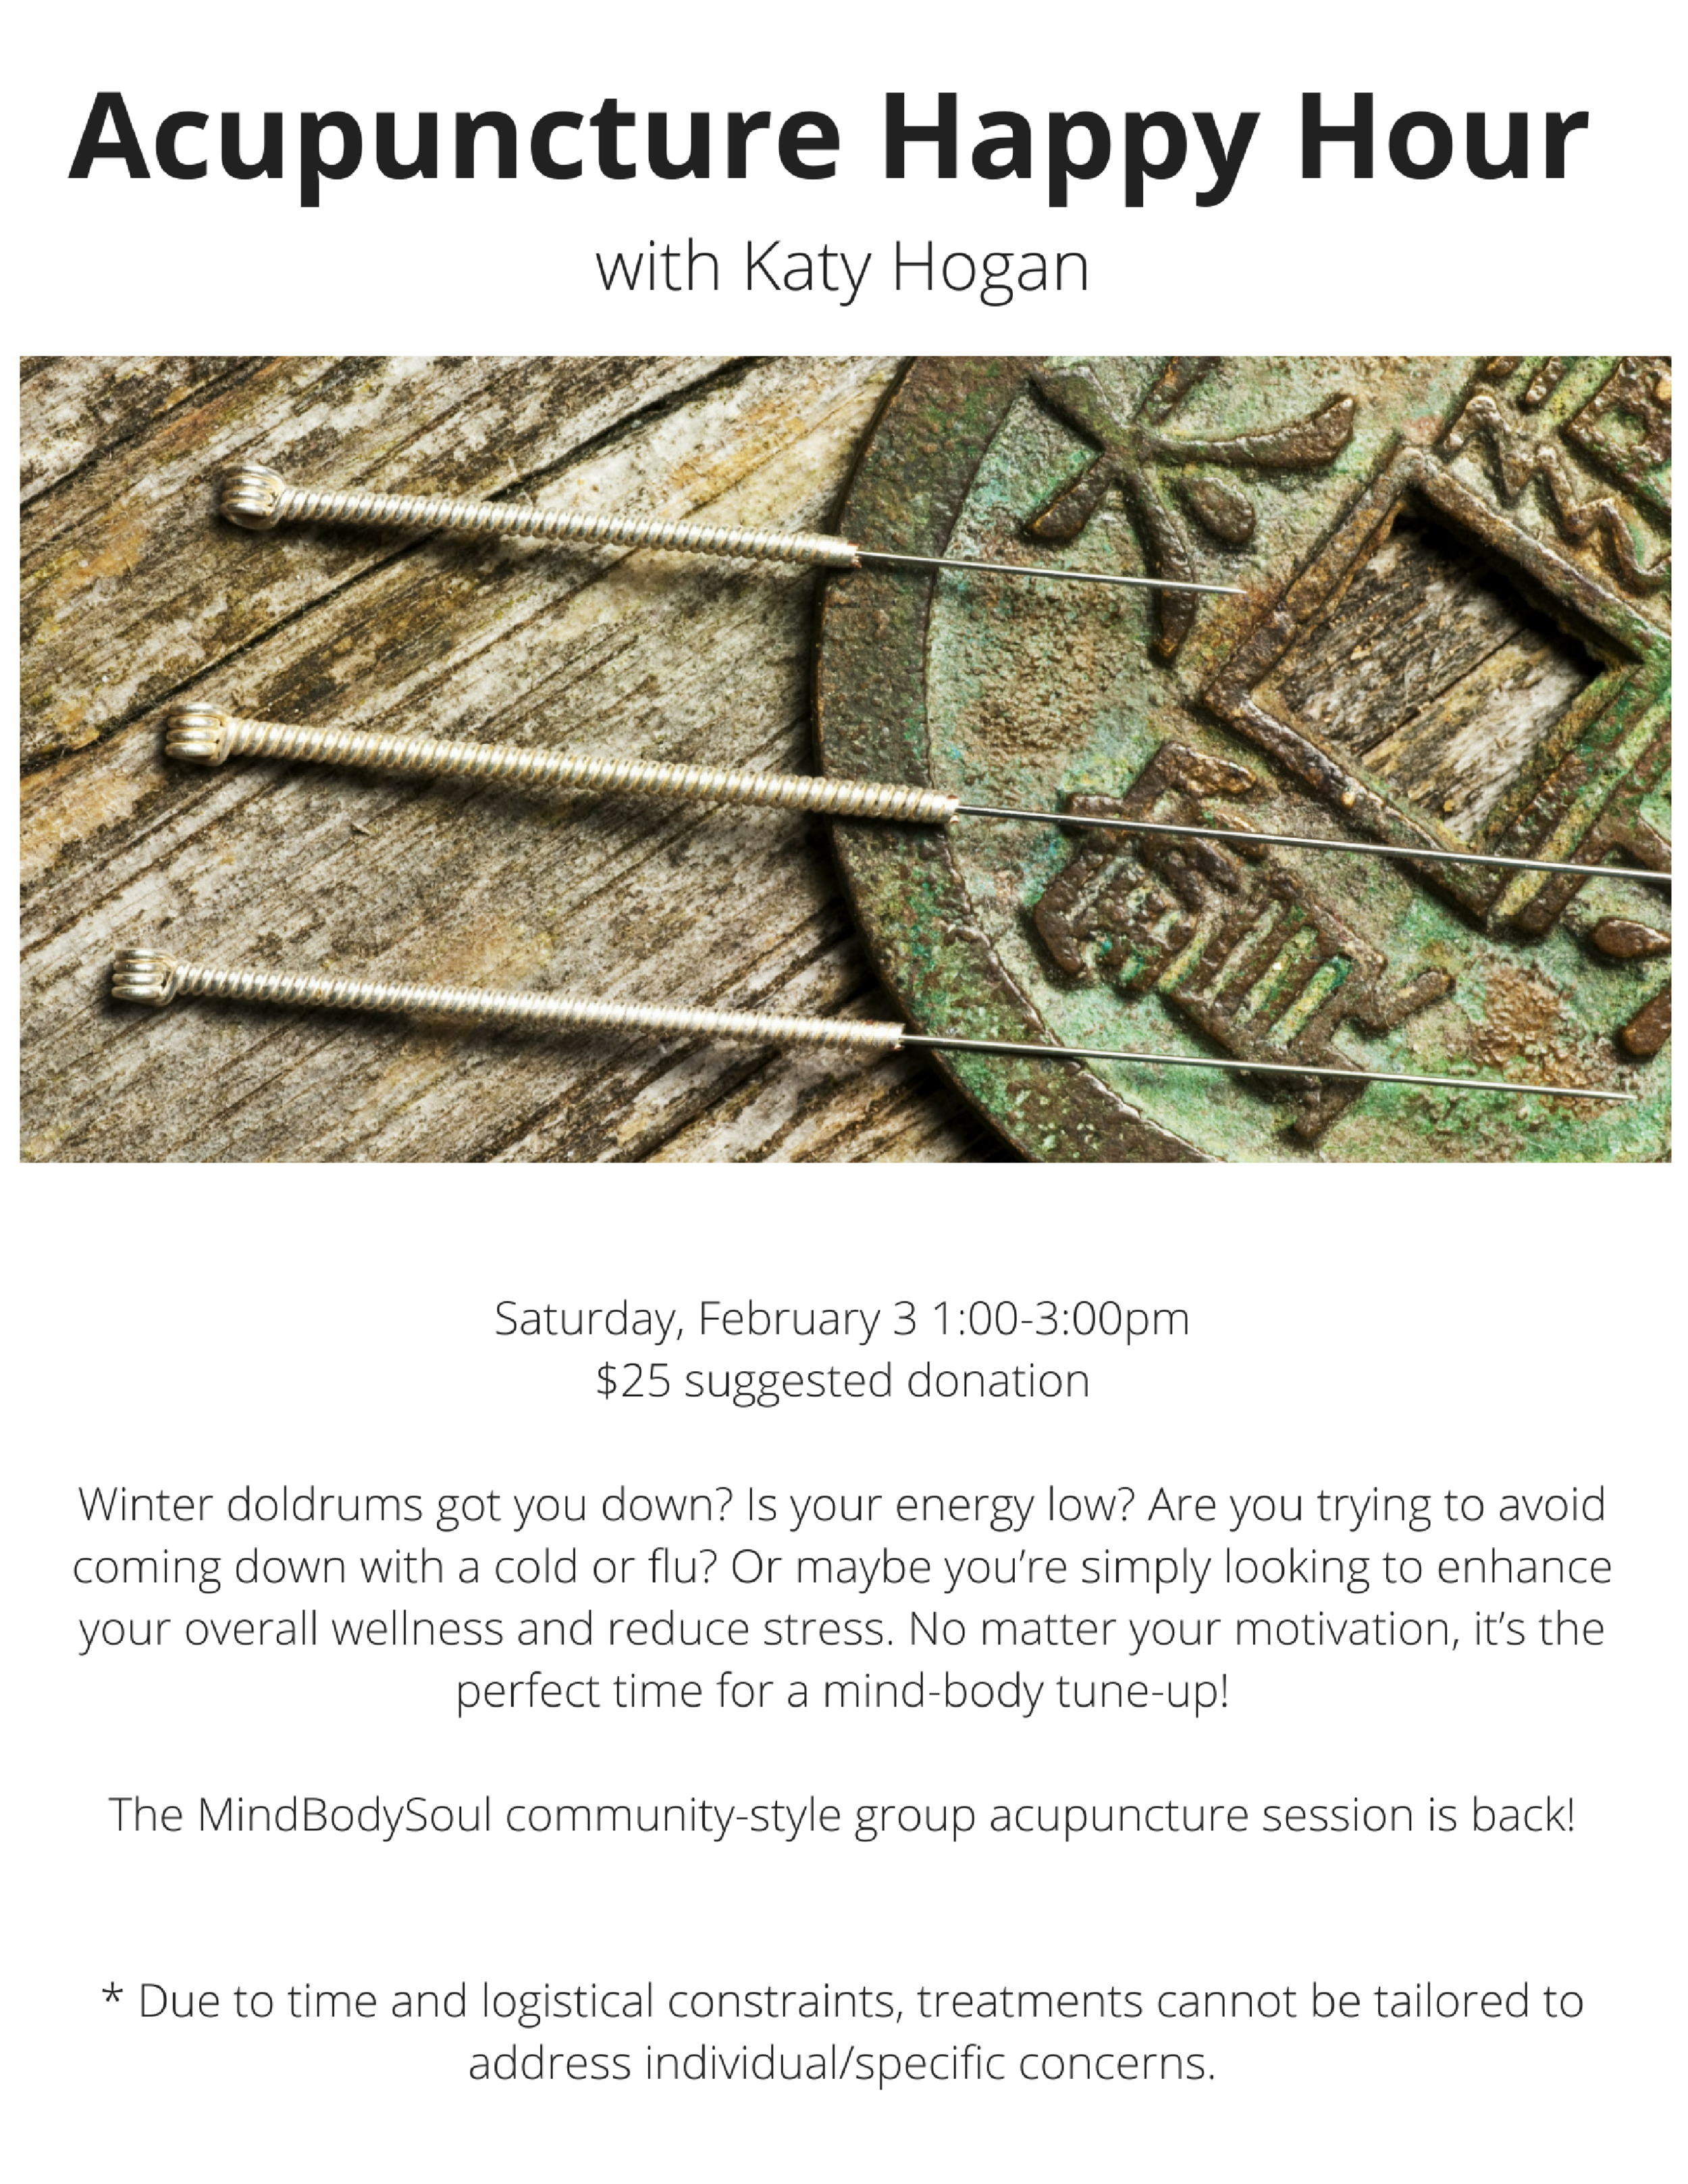 Acupuncture Happy Hour with Katy Hogan.png